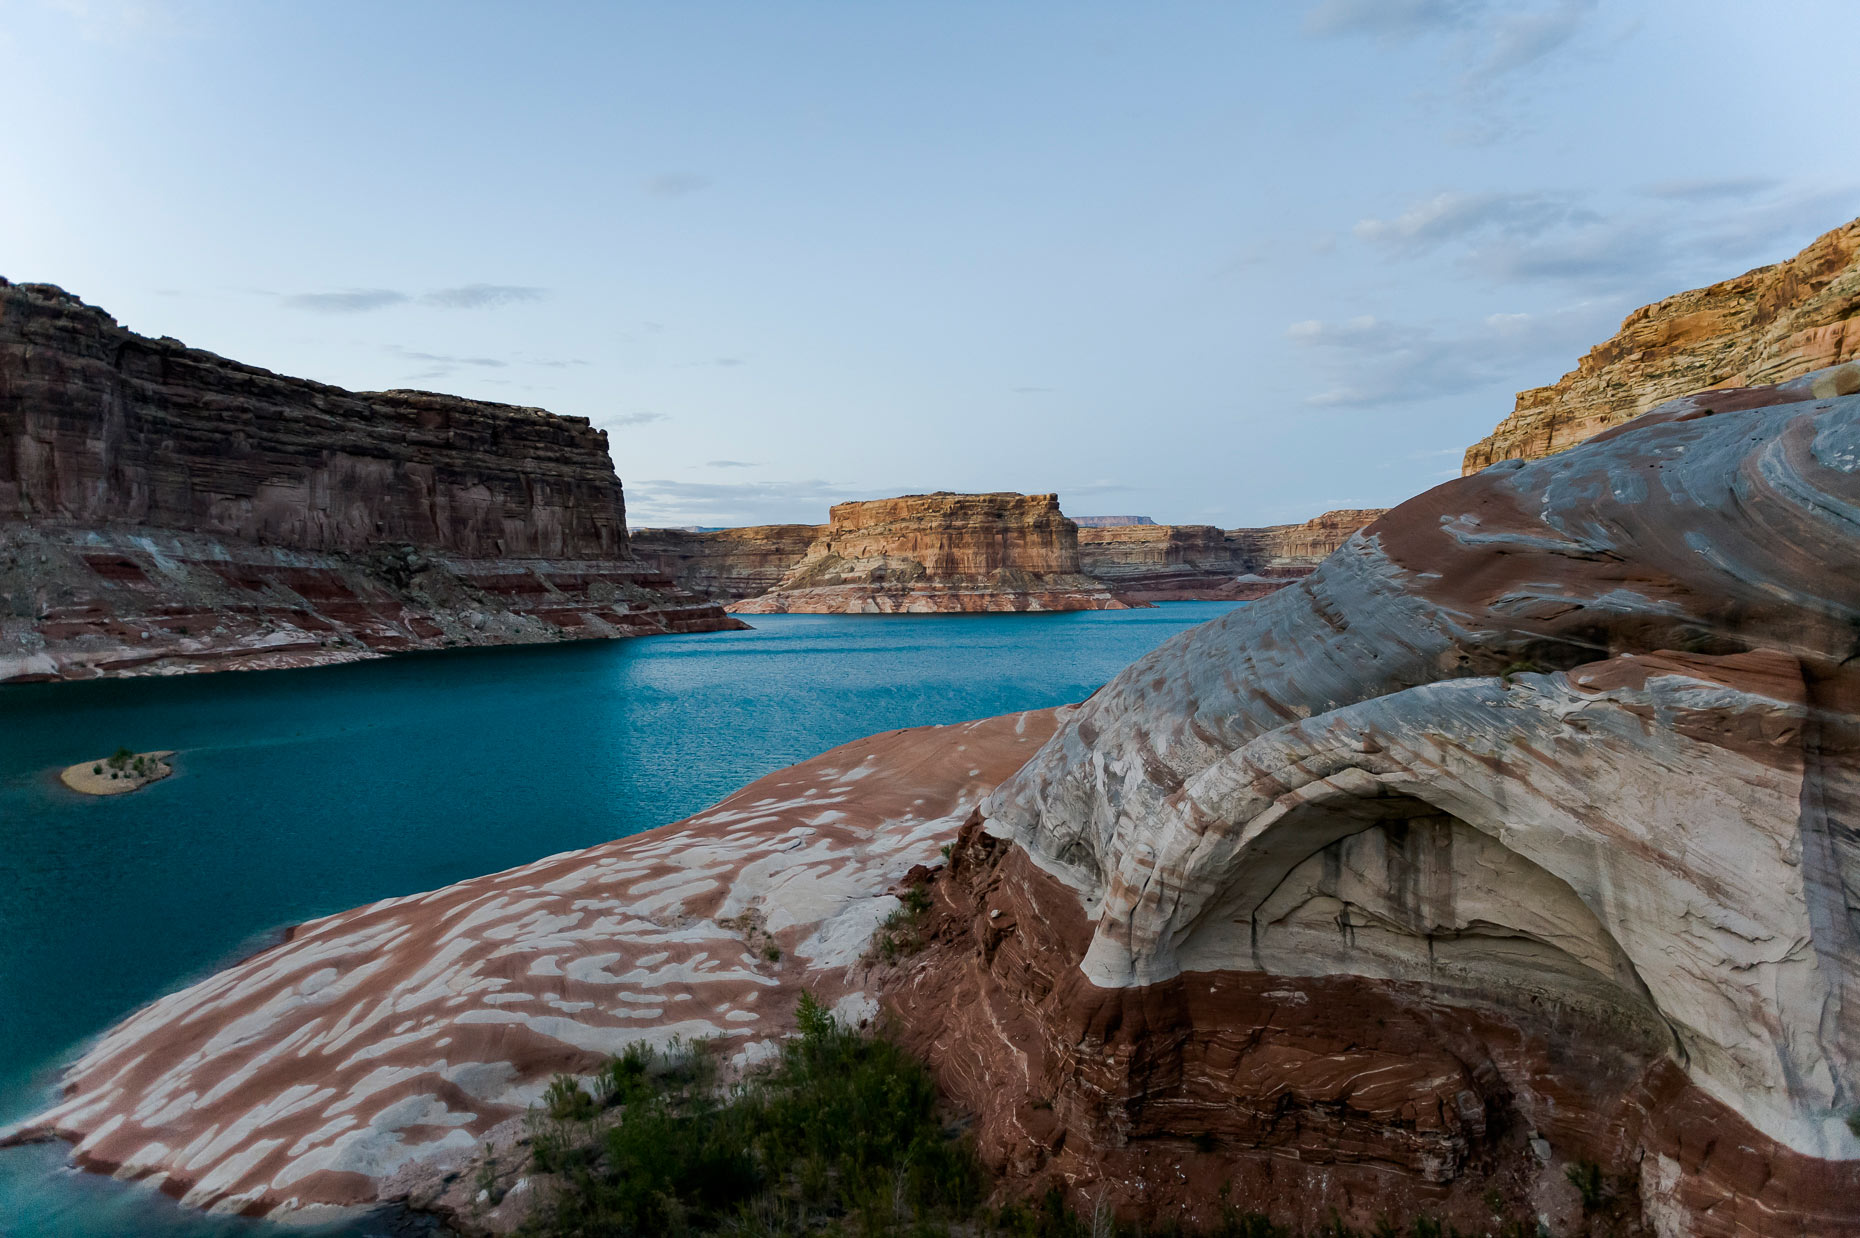 Landscape Photography - Lake Powell, Utah Landscape